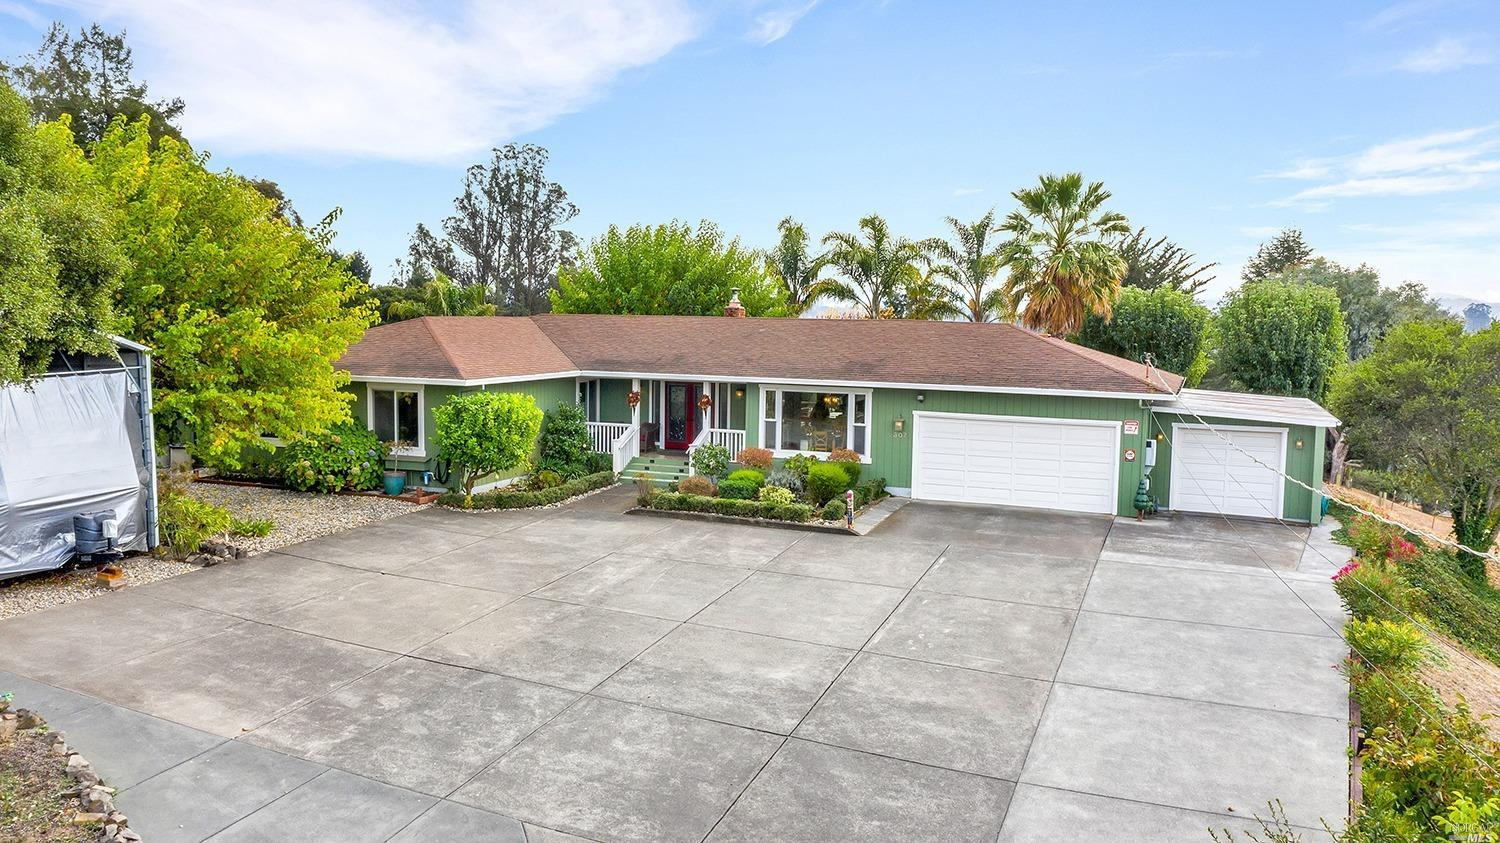 307 Orchard Lane, Penngrove, CA